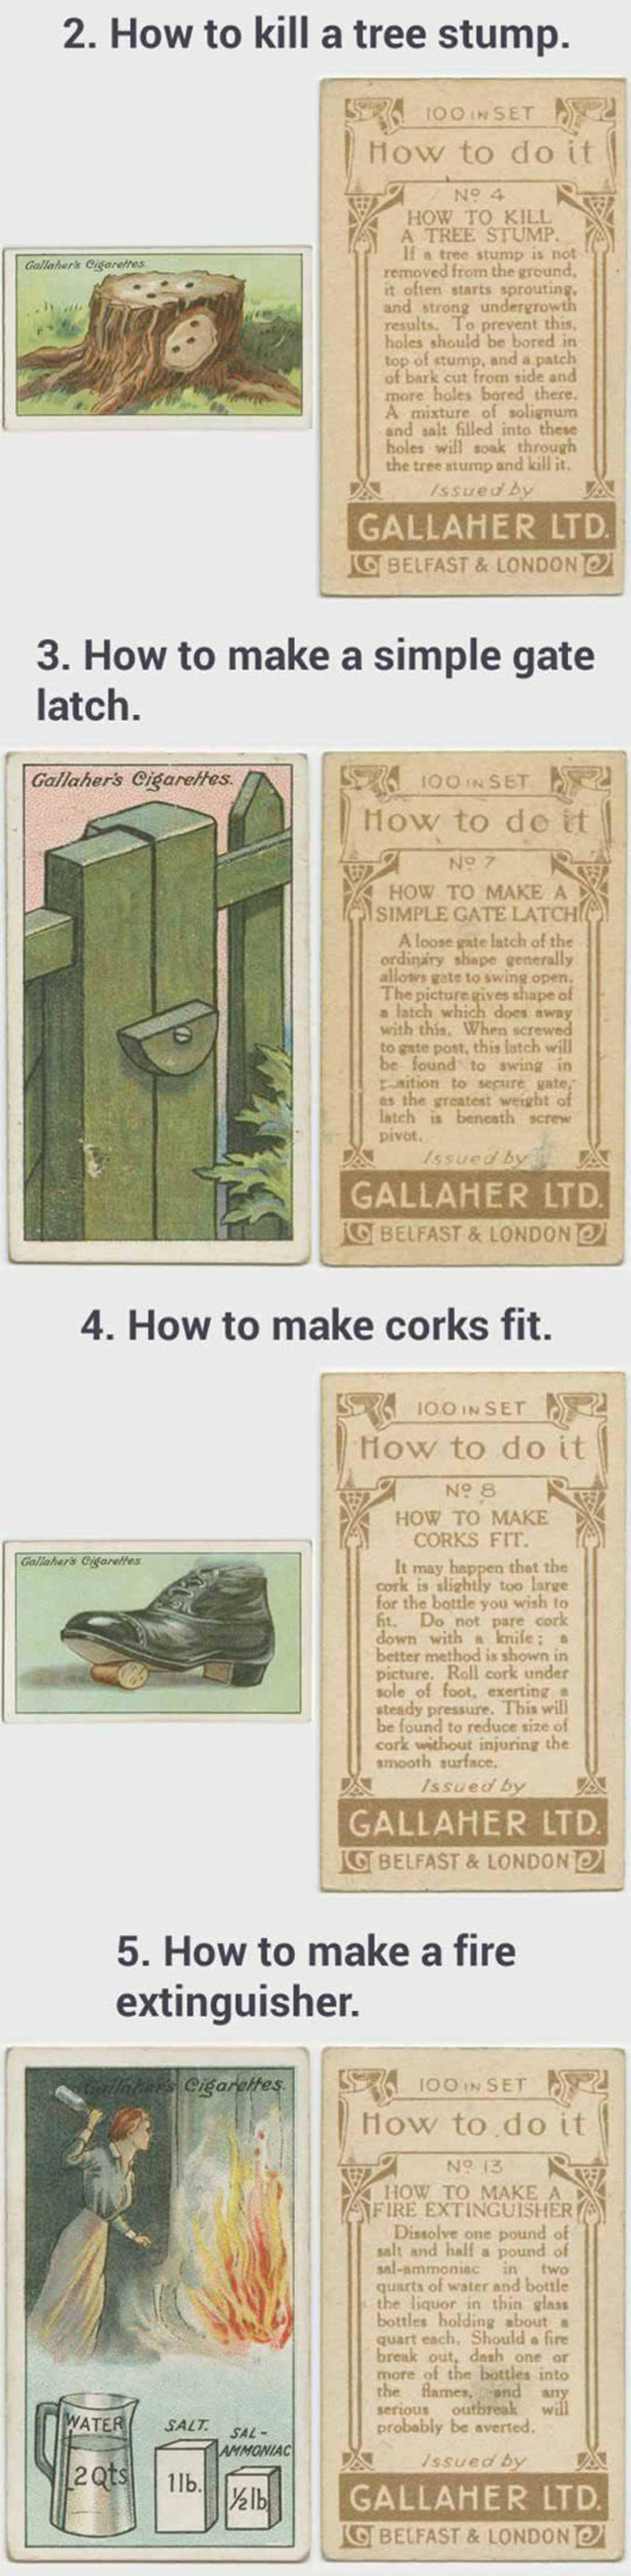 Cool Vintage Life Hacks That Are Still Useful Today